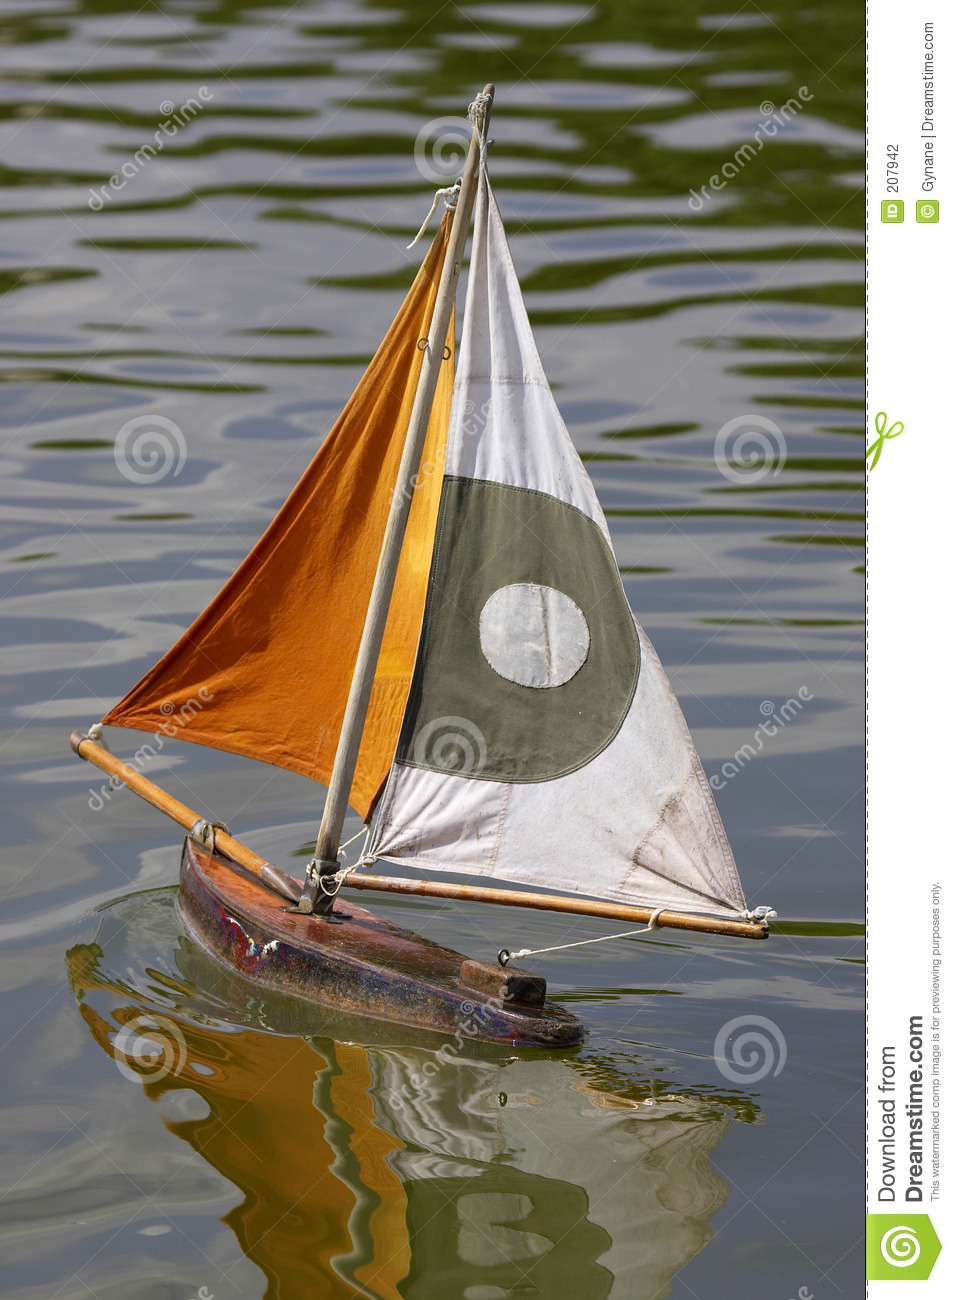 wooden sailing boats in jardin des tuileries paris france stock